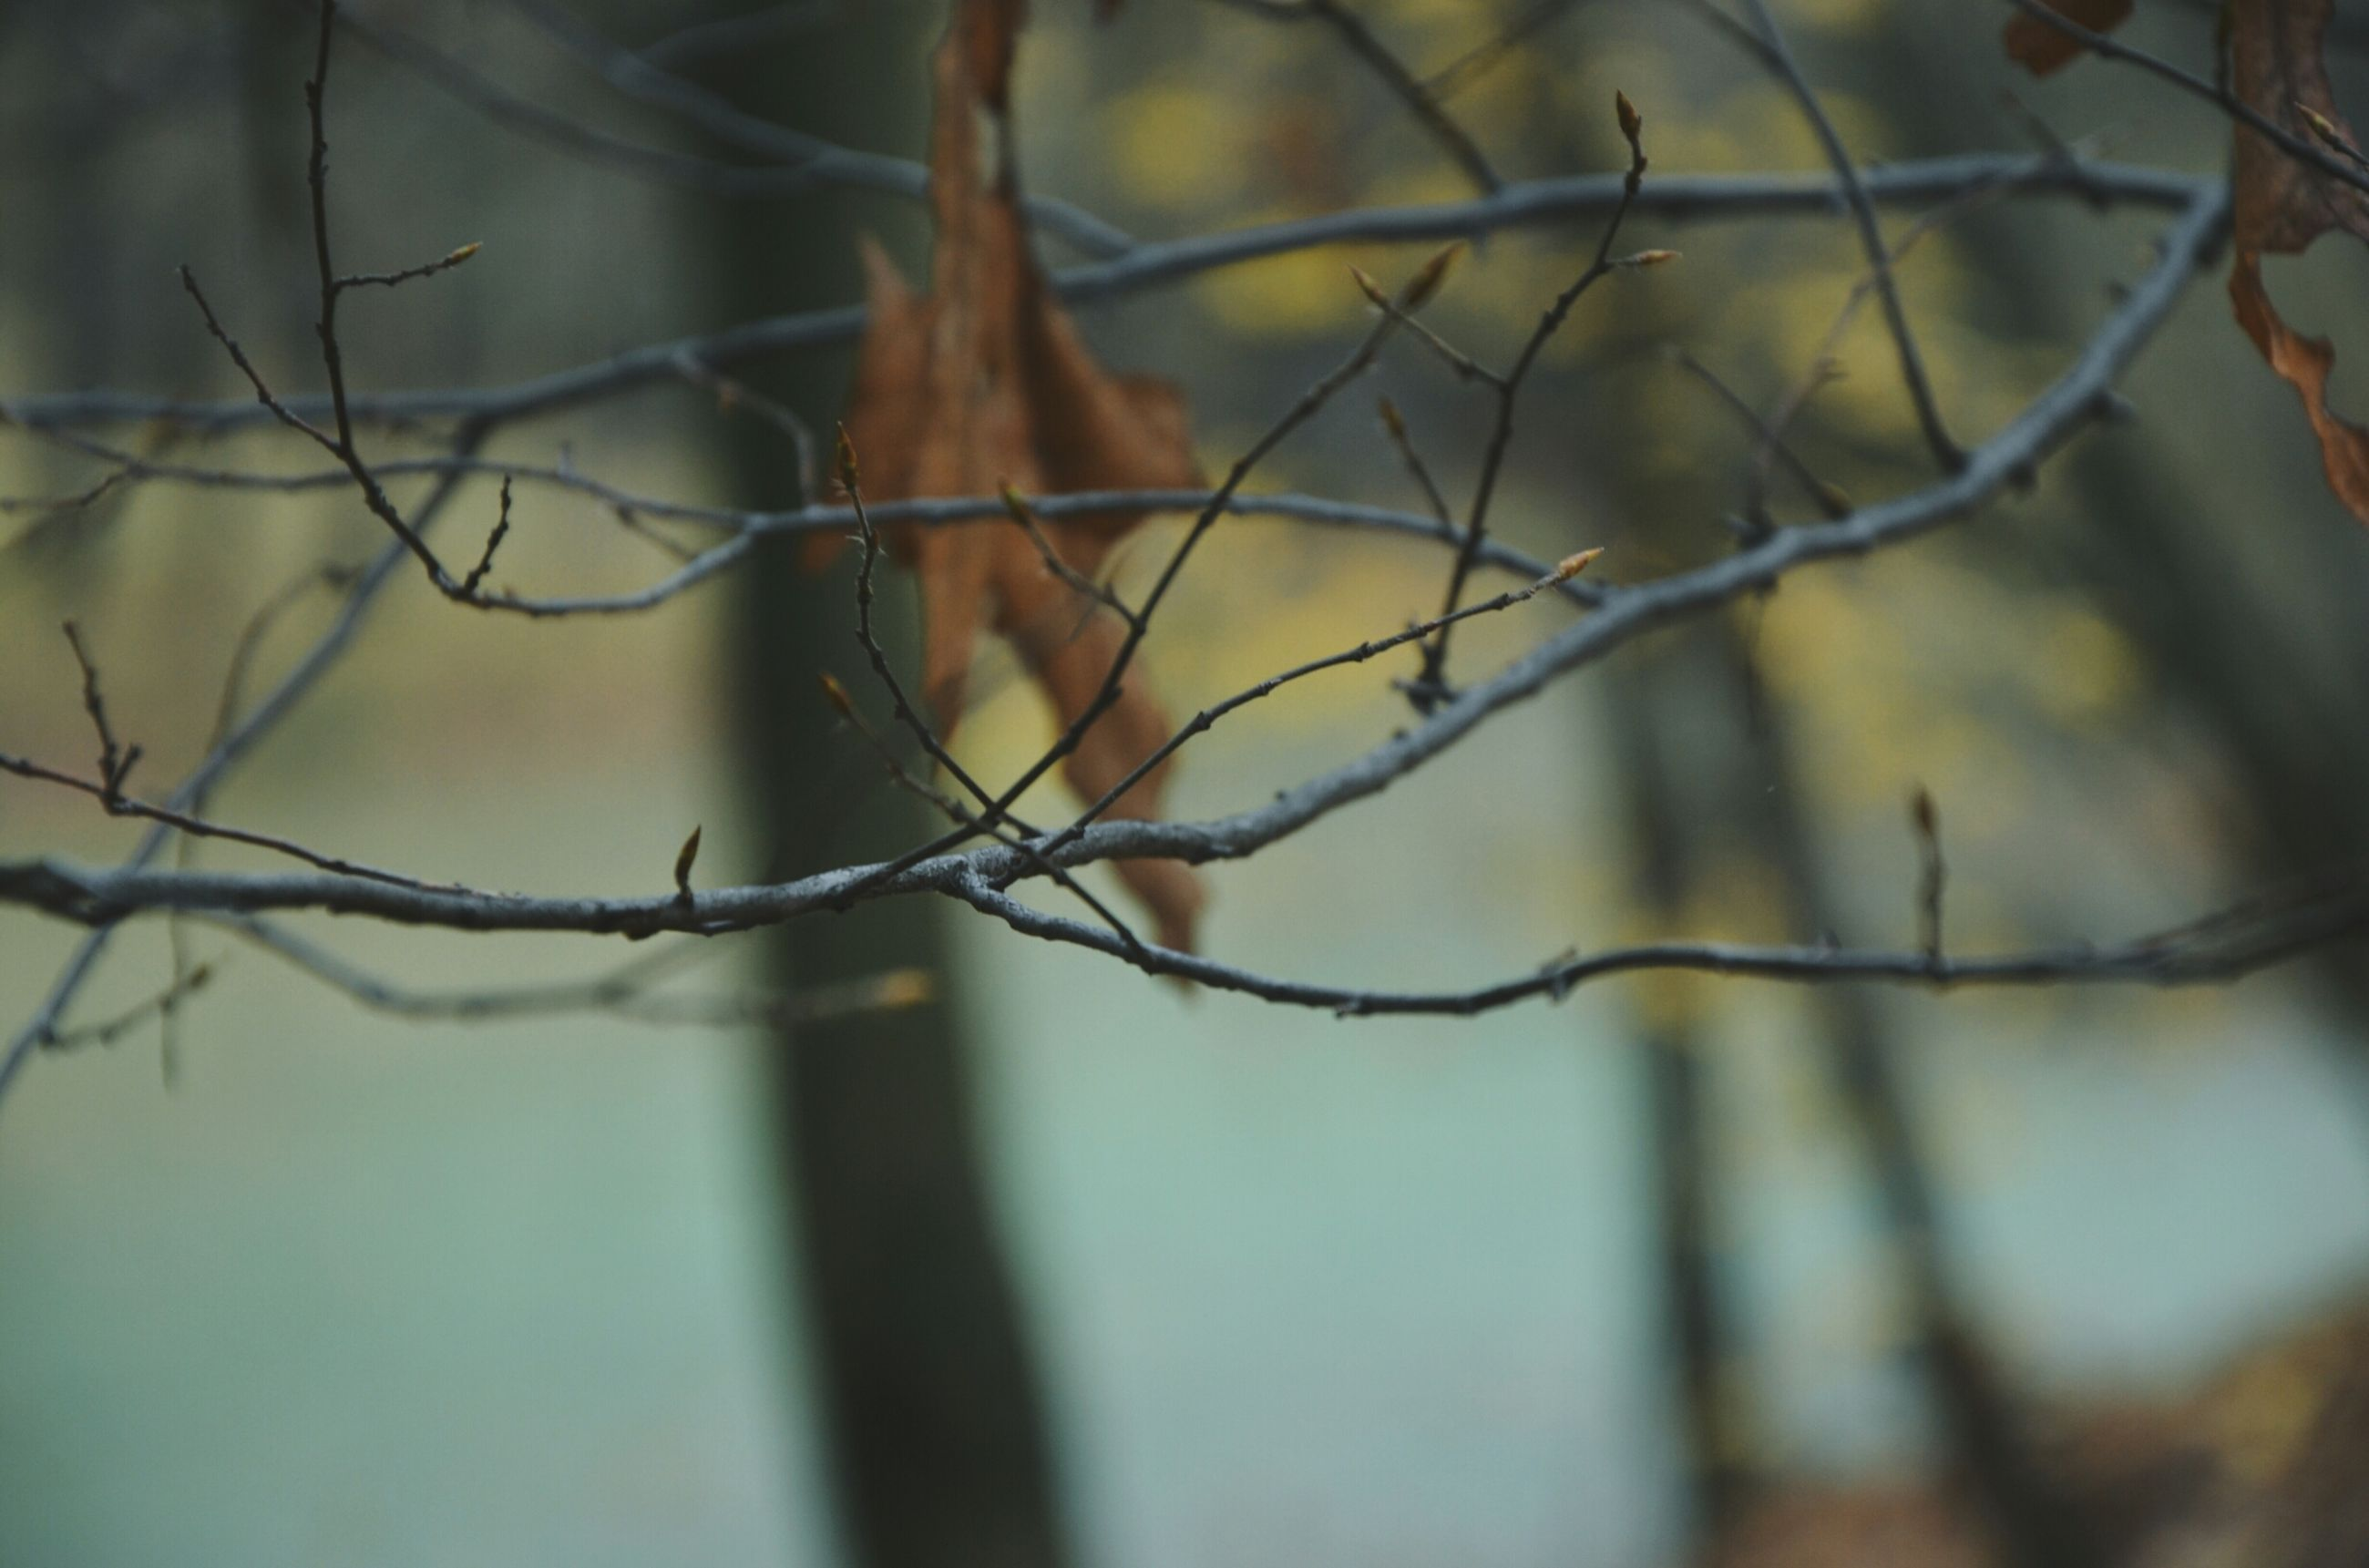 branch, animal themes, one animal, focus on foreground, nature, close-up, twig, selective focus, tree, wildlife, animals in the wild, no people, outdoors, day, bare tree, beauty in nature, tranquility, dry, plant, perching